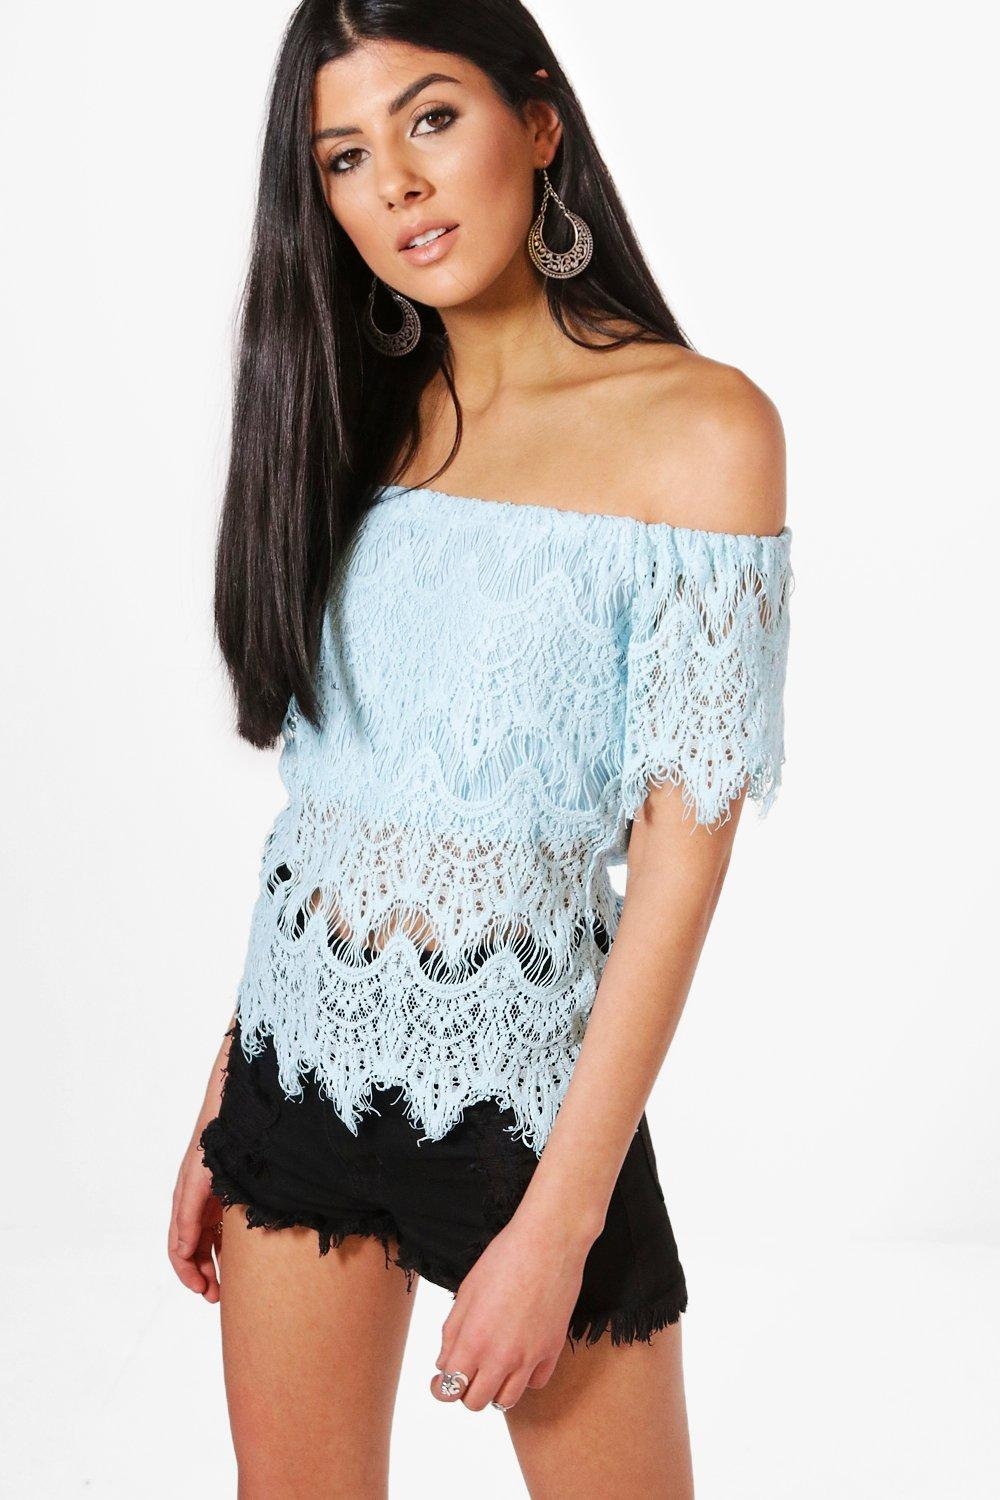 39e9a16634f68 Sarah Eyelash Lace Off The Shoulder Top. Hover to zoom